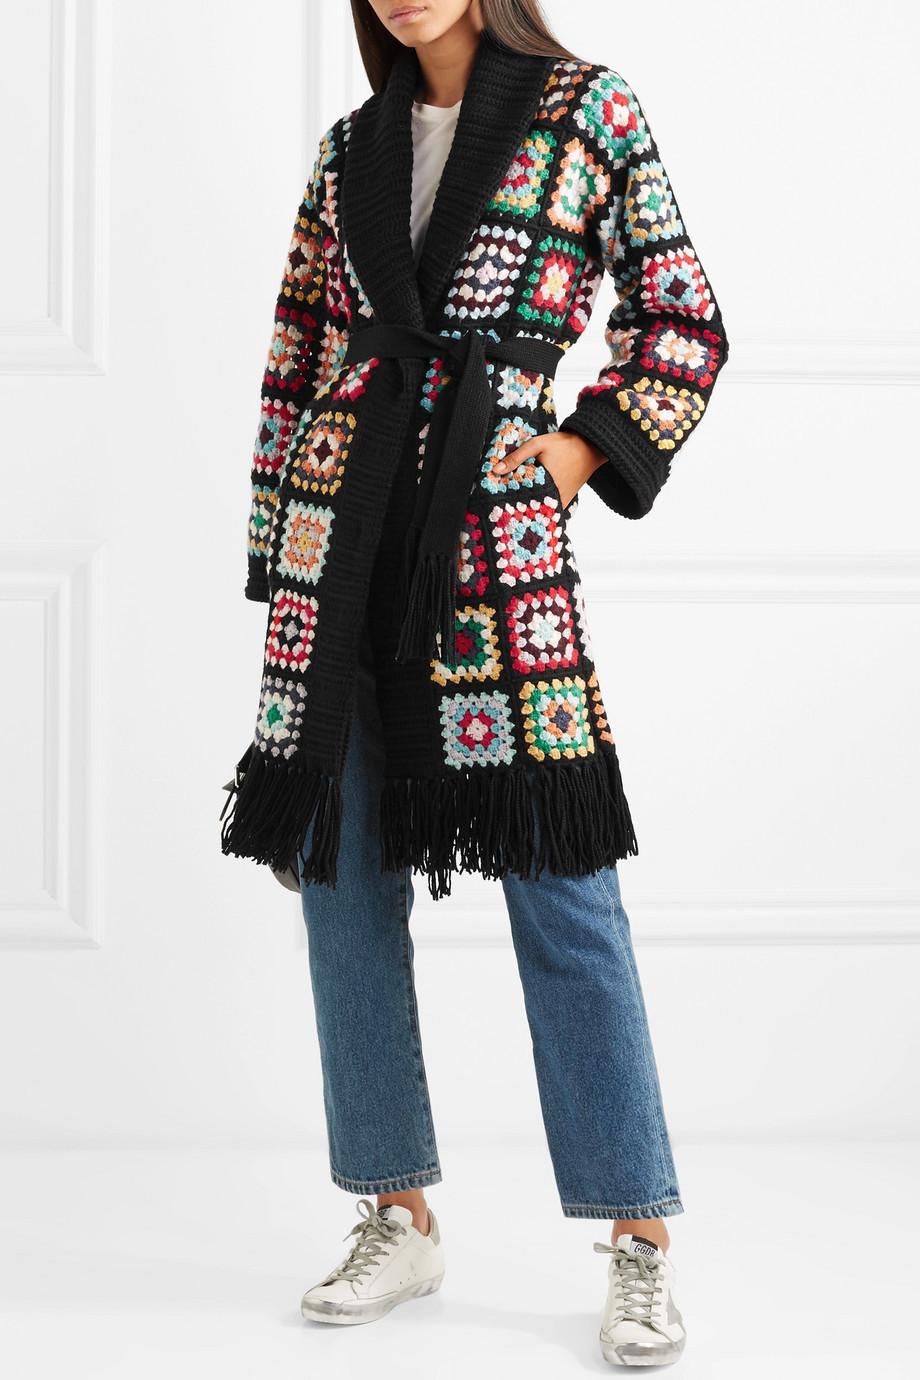 Alanui Fringed Patchwork crocheted cashmere cardigan $6,161.11